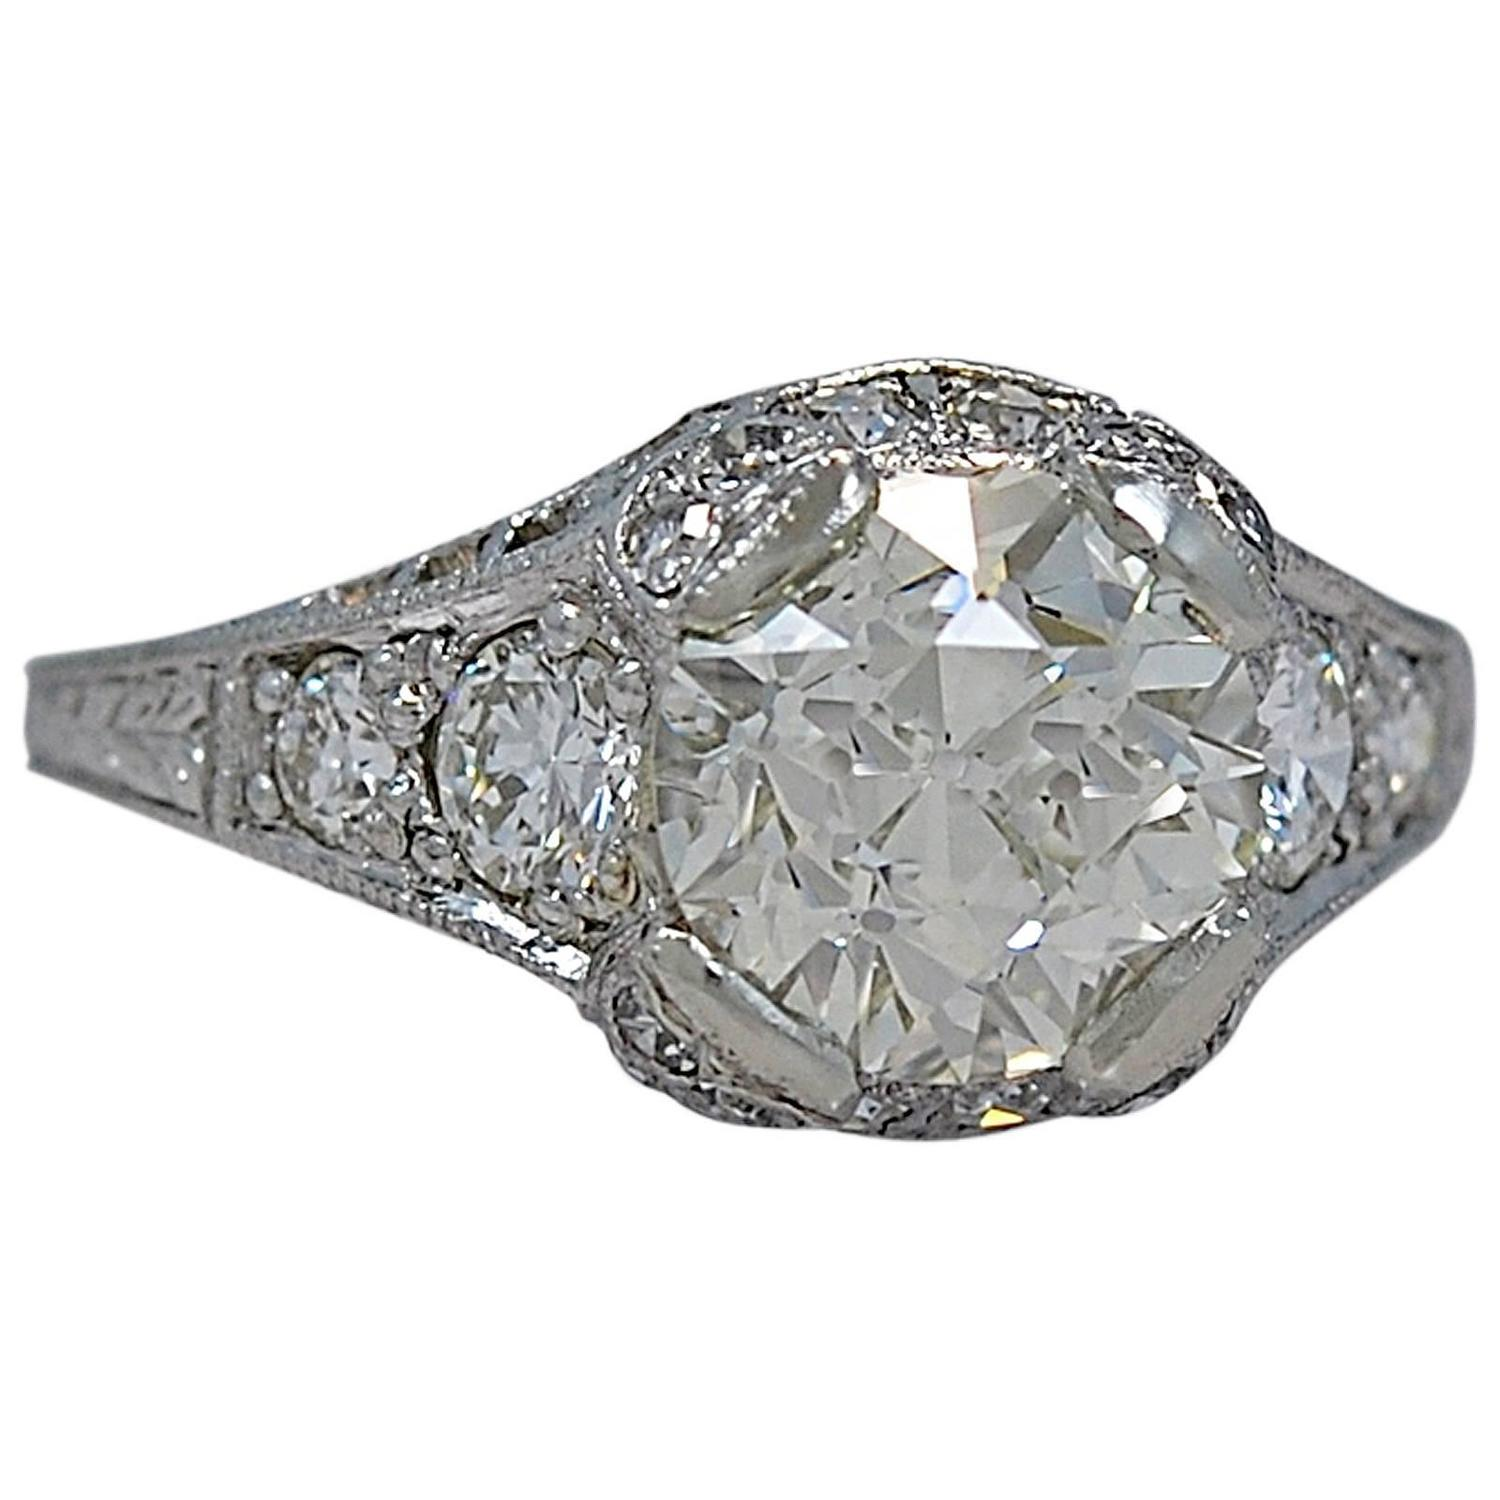 Whitehouse Brothers Art Deco 2 00 Carat Diamond Platinum Engagement Ring at 1